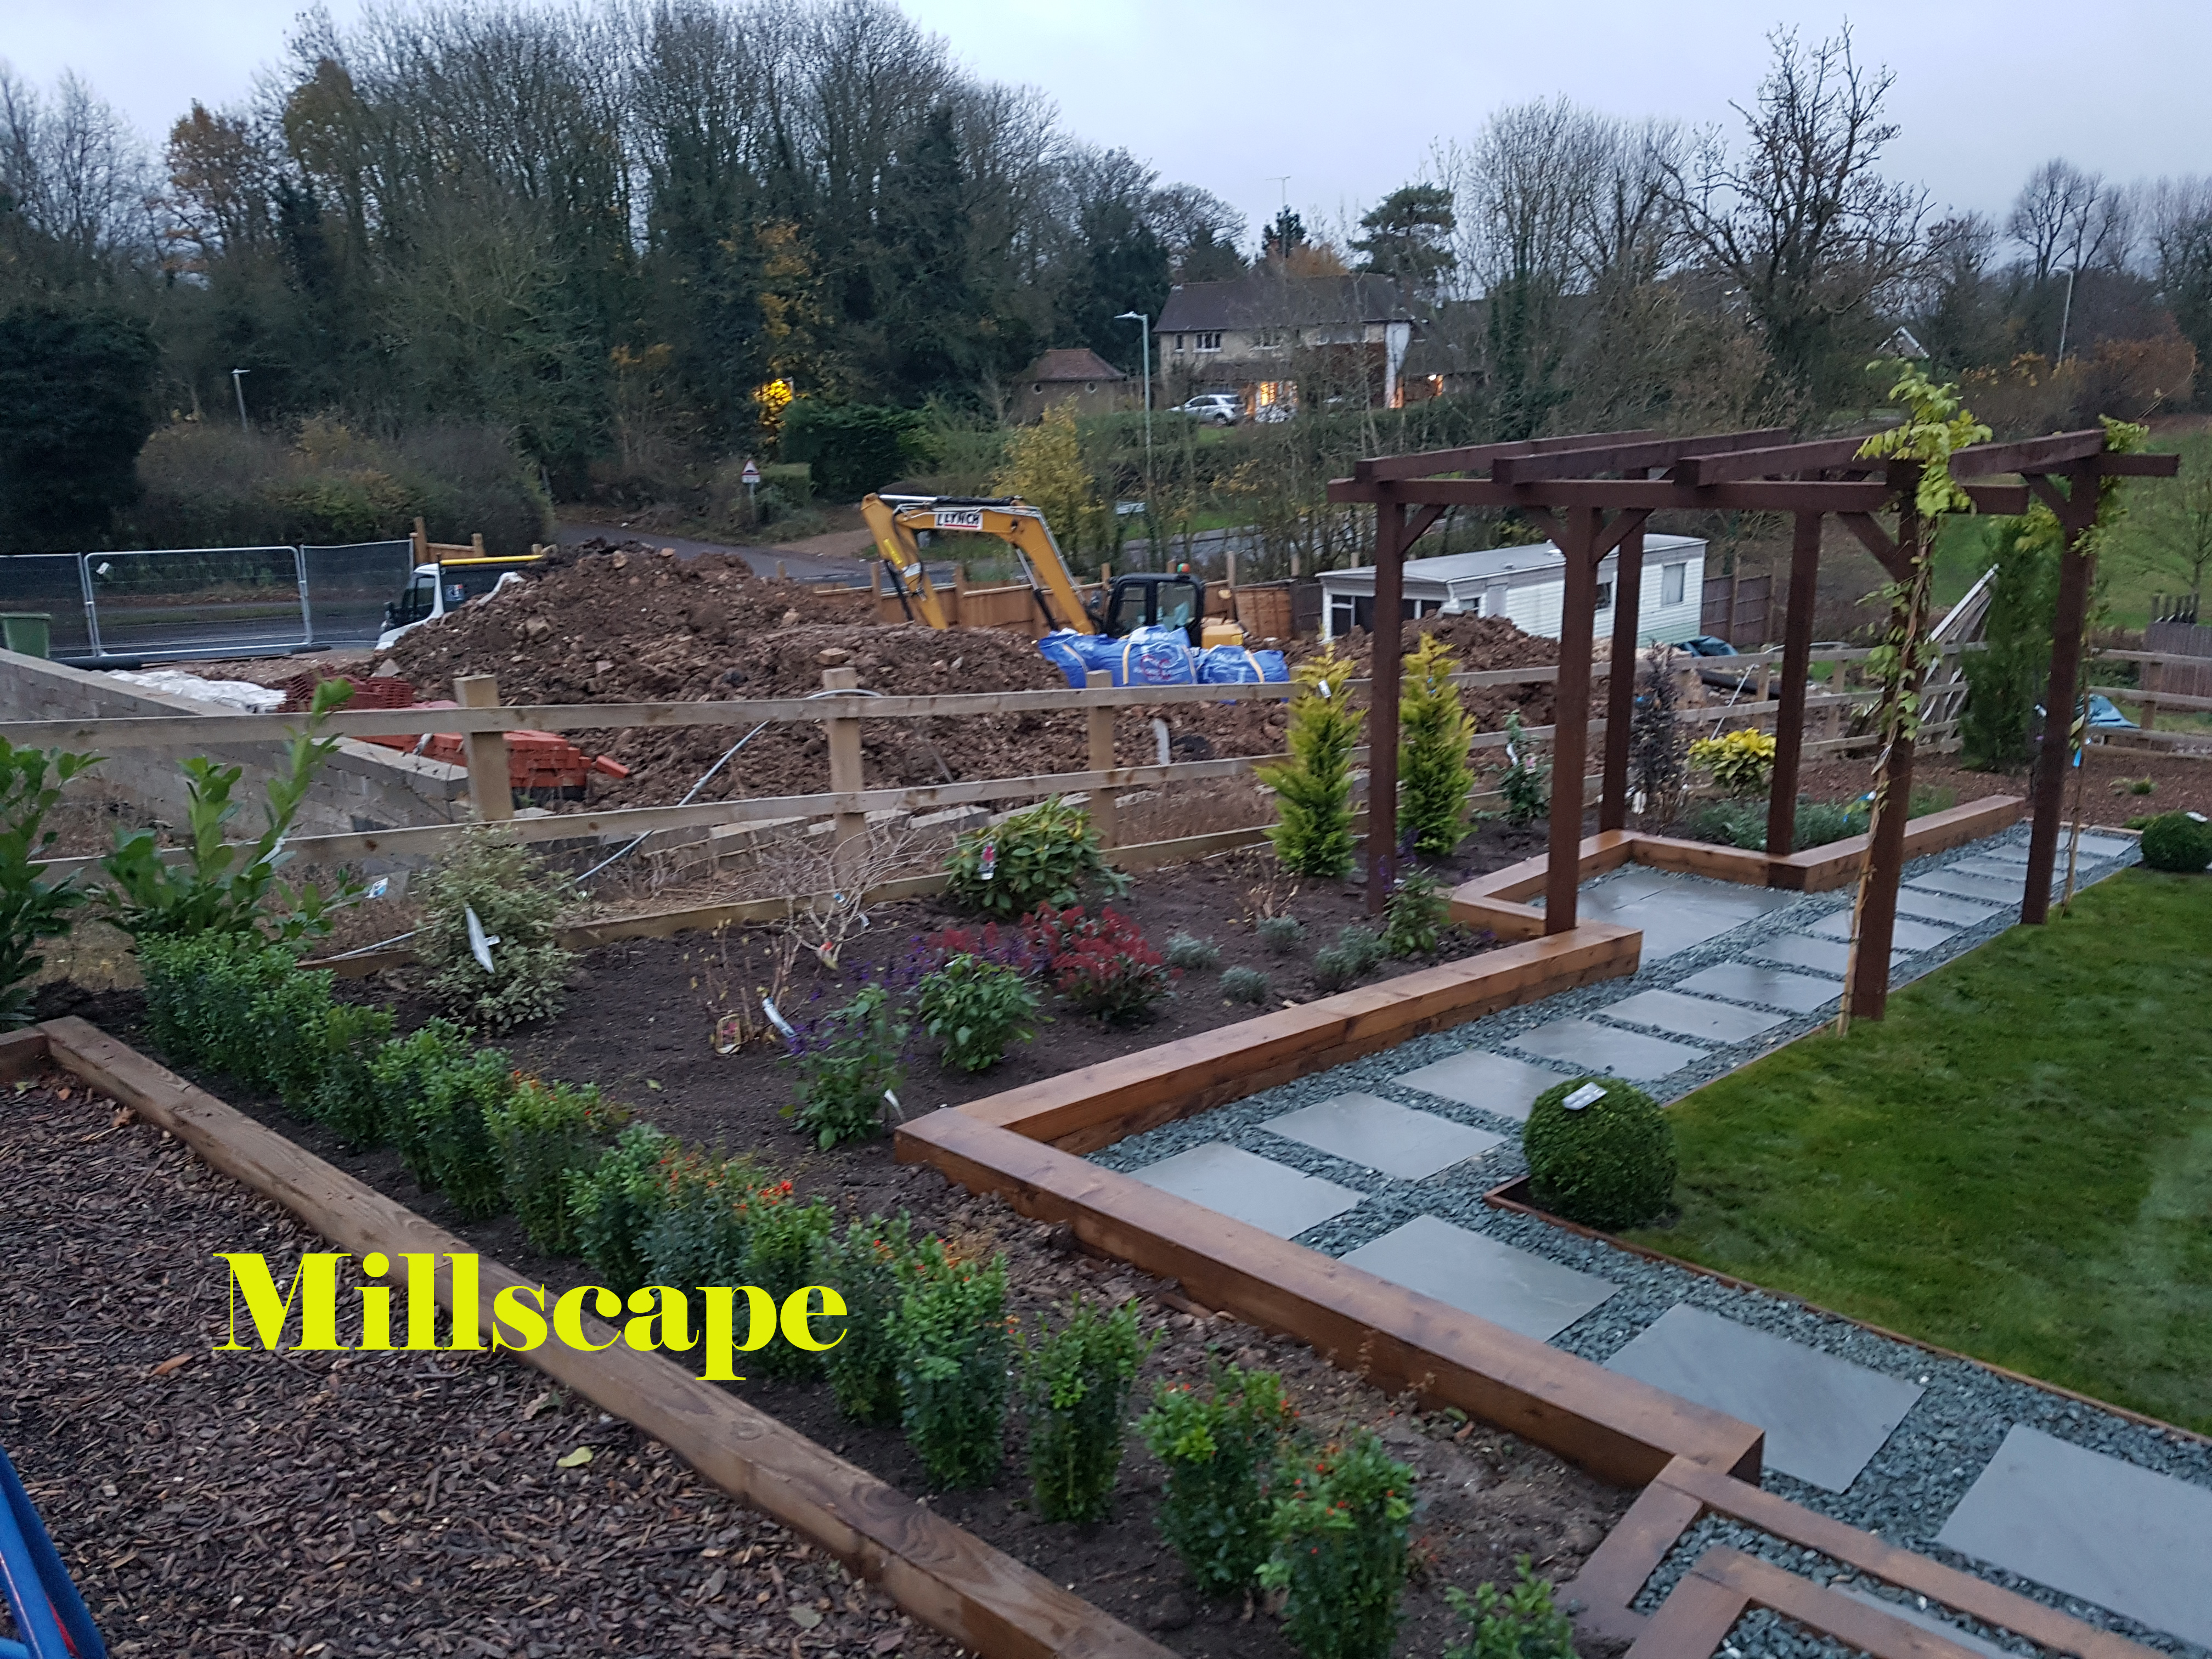 design ,landscaping ,Elstree ,Planting ,composite decking ,Millscape